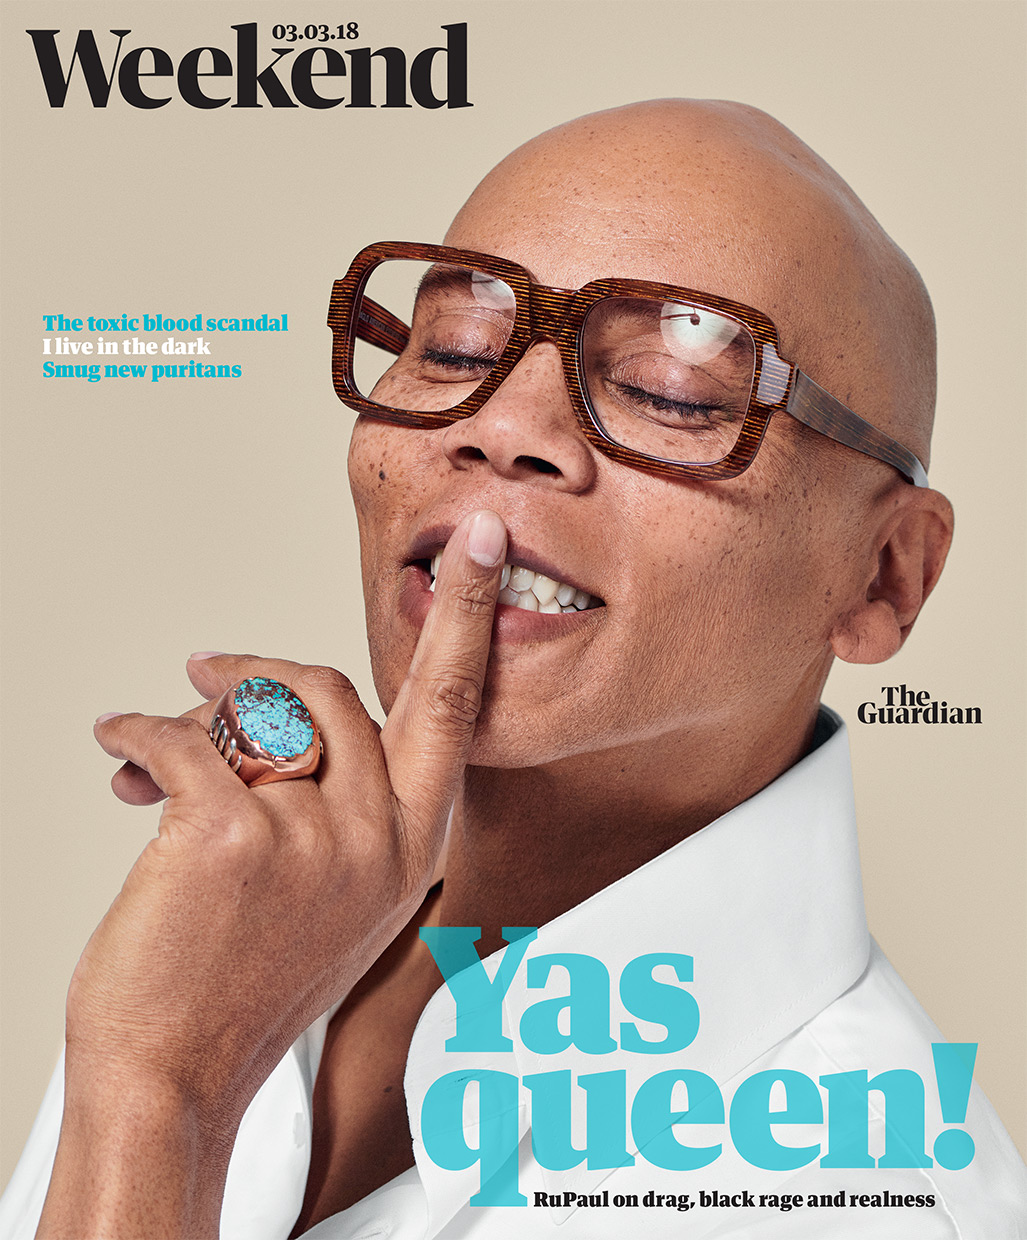 RuPaul. The Guardian Weekend.